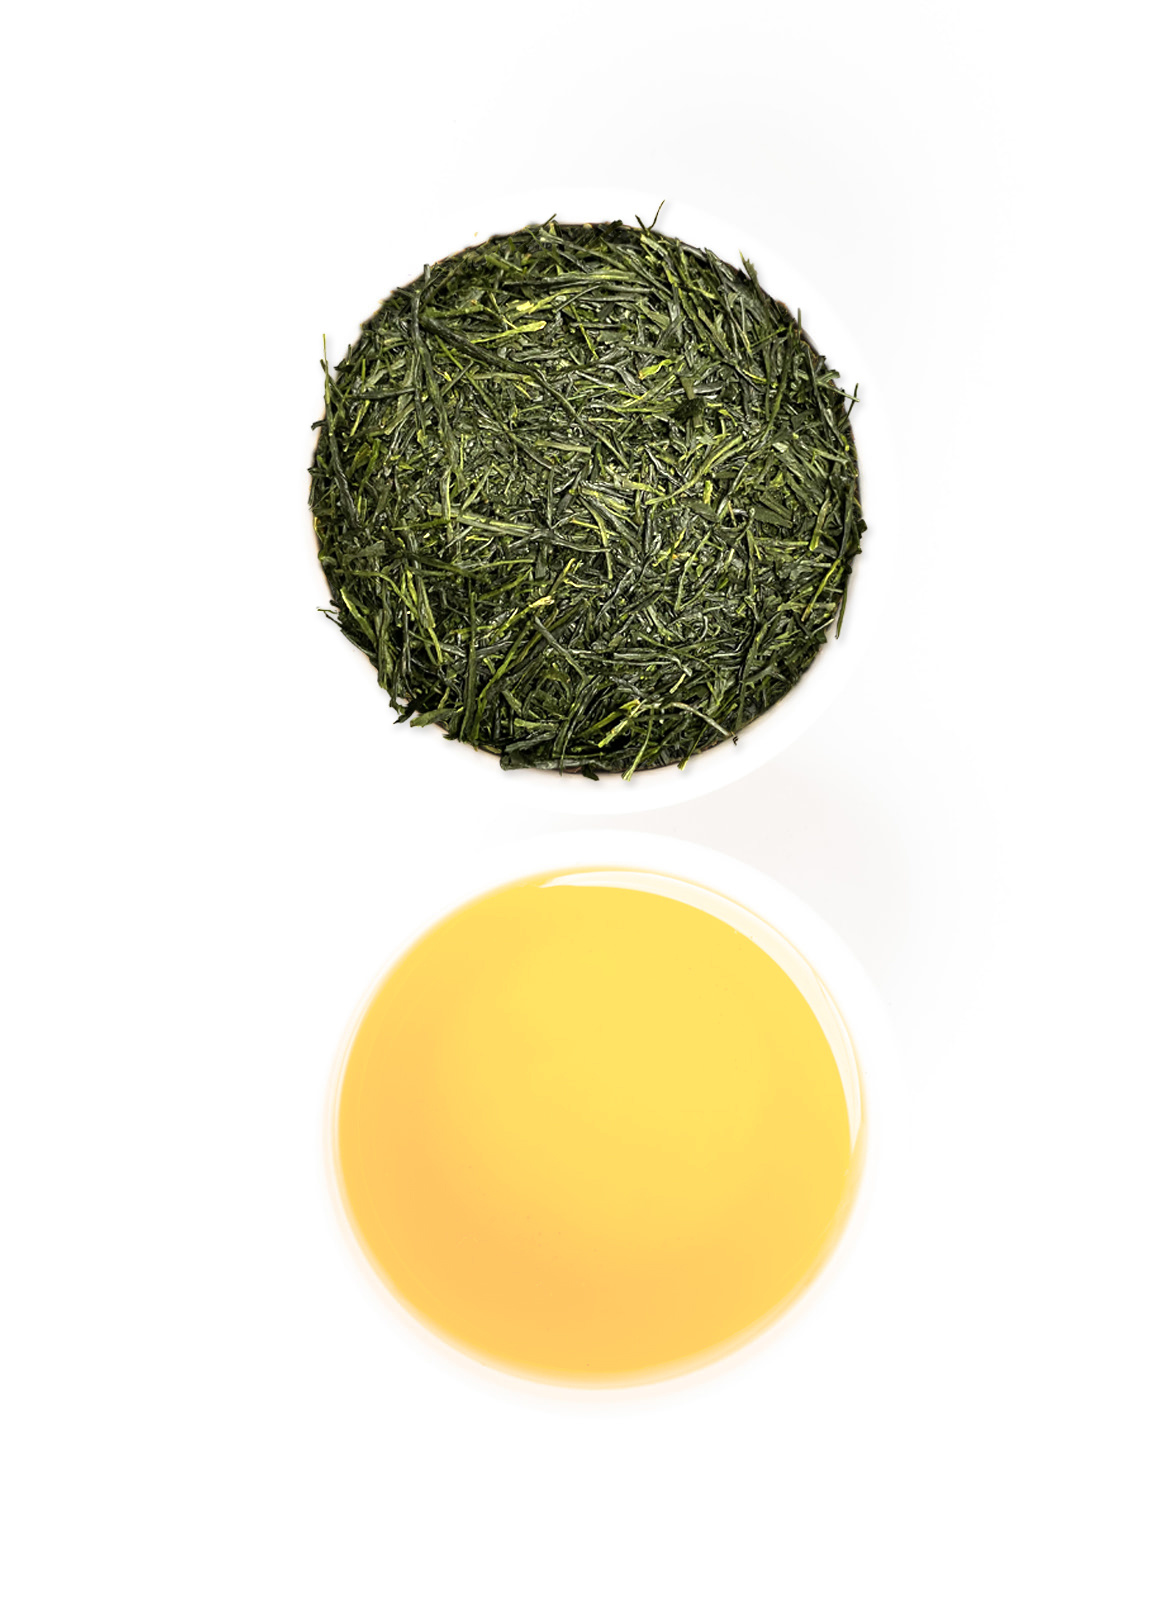 Organic Japanese Sencha - pure green Japanese tea